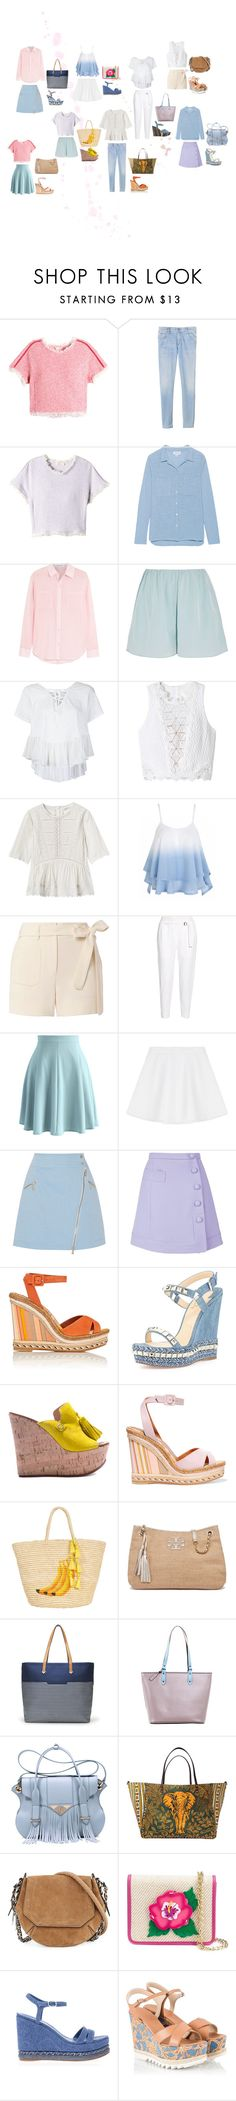 """""""summer beach"""" by yusufbudiman on Polyvore featuring Rebecca Taylor, Velvet by Graham & Spencer, Elizabeth and James, Helmut Lang, Chicwish, RED Valentino, Karl Lagerfeld, Carven, Valentino and Christian Louboutin"""